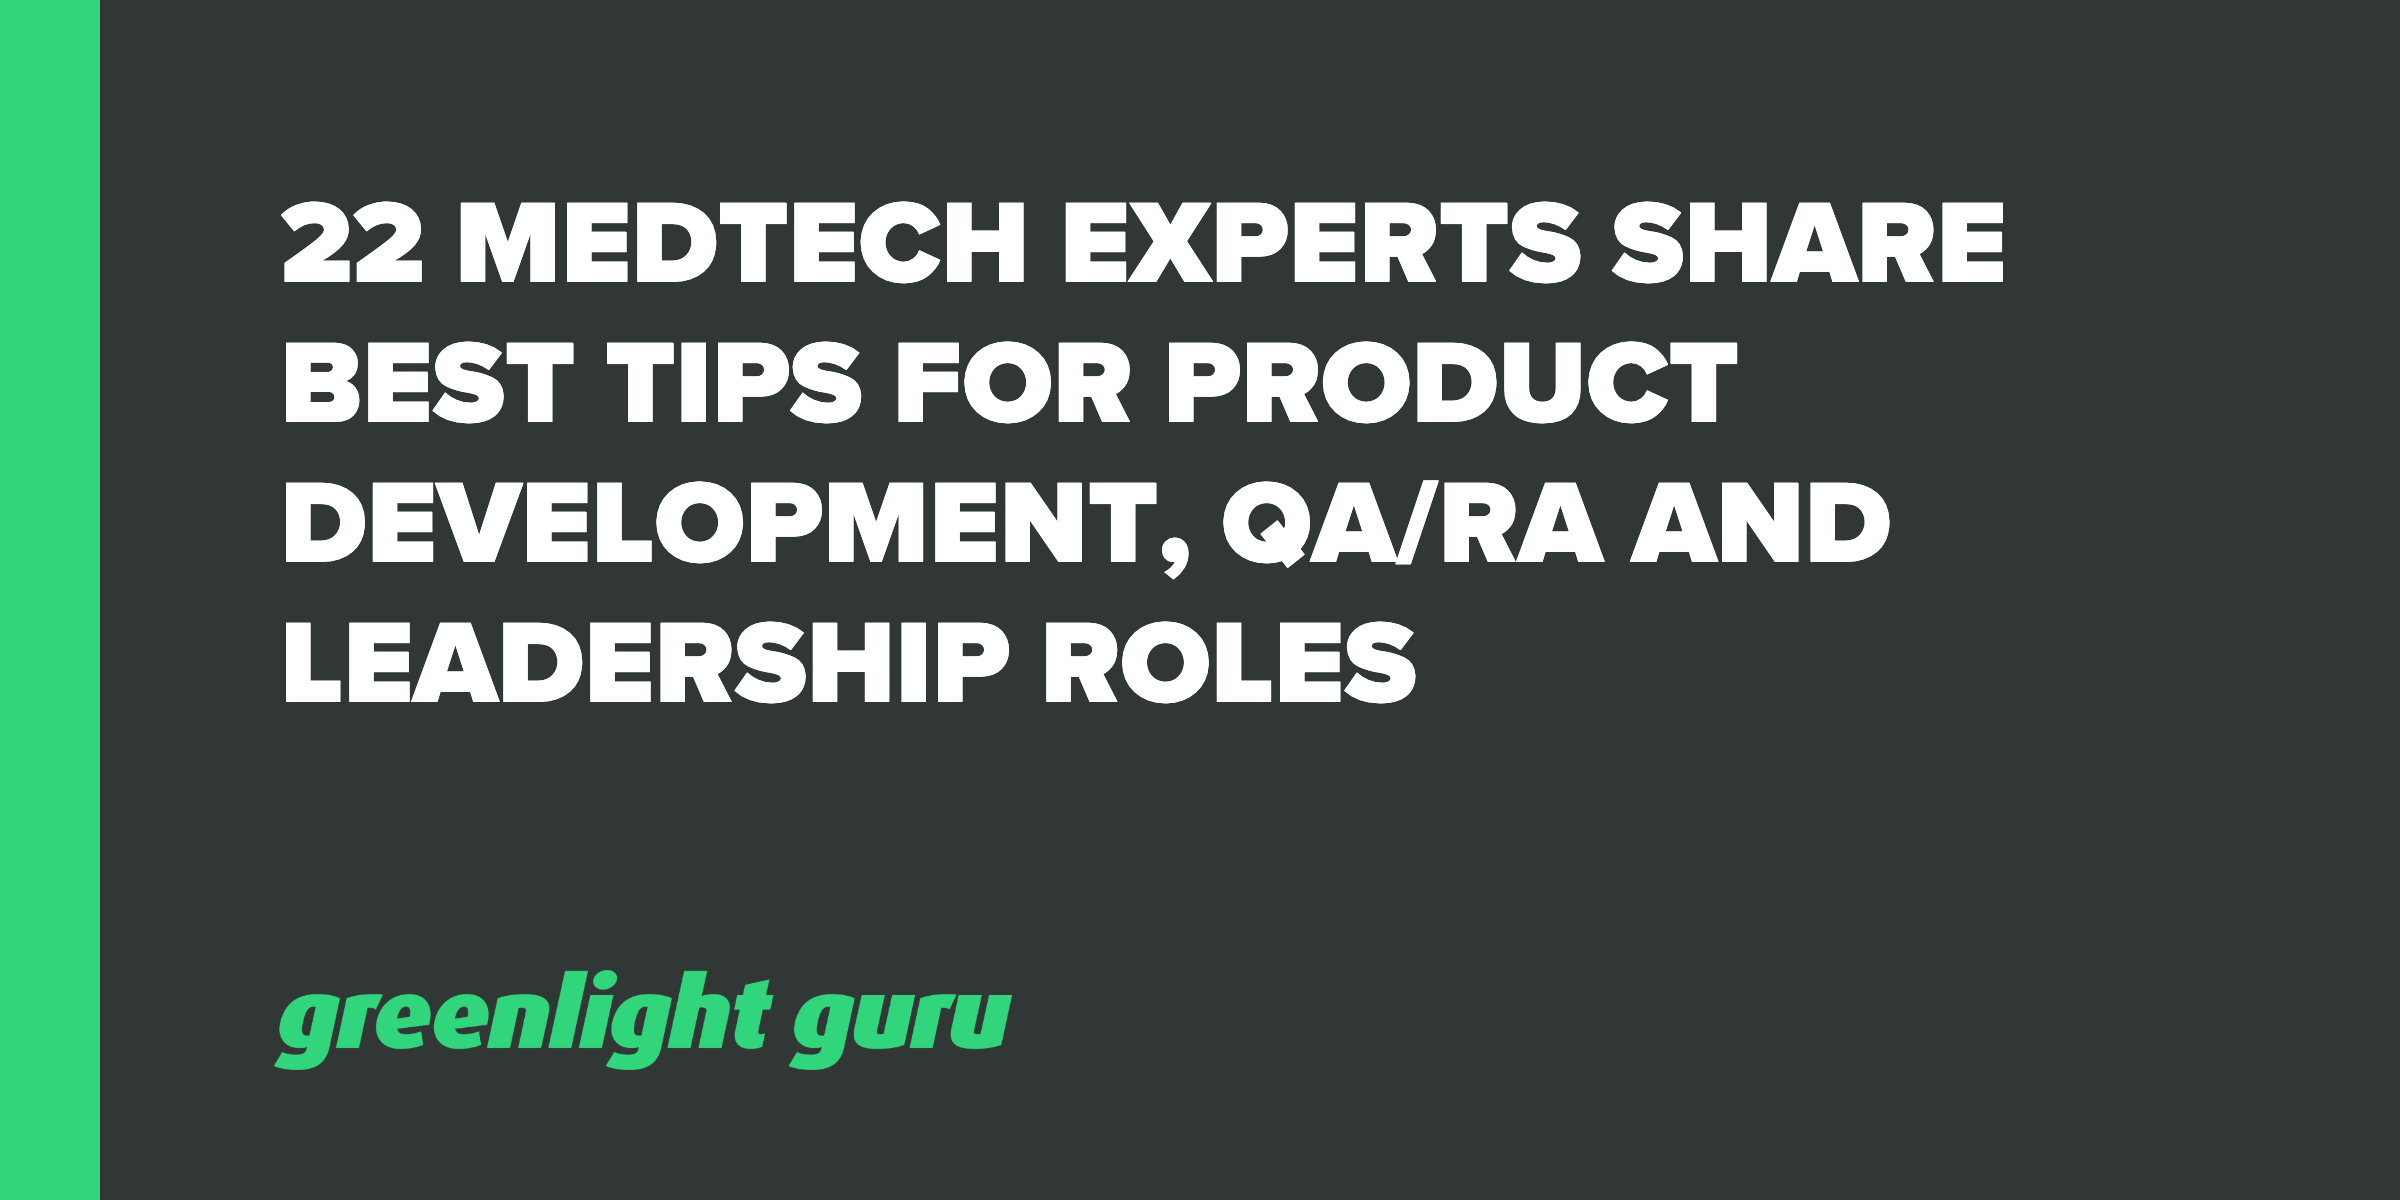 22 MedTech Experts Share Best Tips for Product Developers, QA/RA Professionals & Leadership Roles - Featured Image